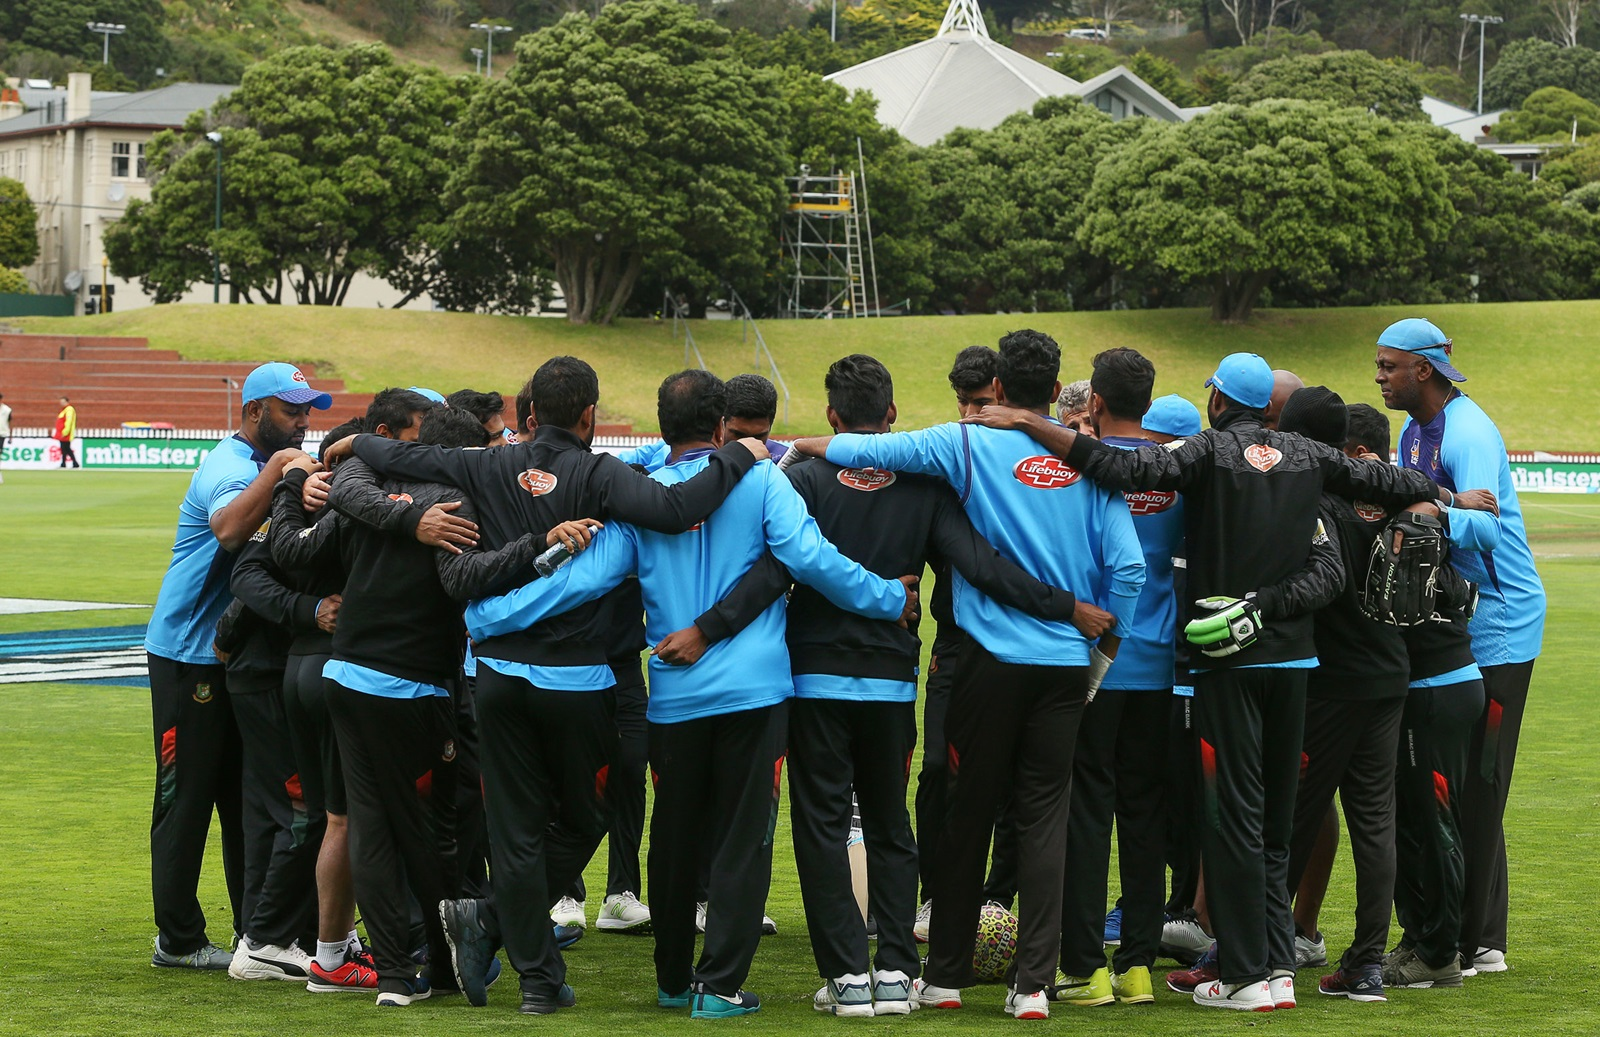 New Zealand Shooting Video Update: Cricketers Escape NZ Mosque Shooting